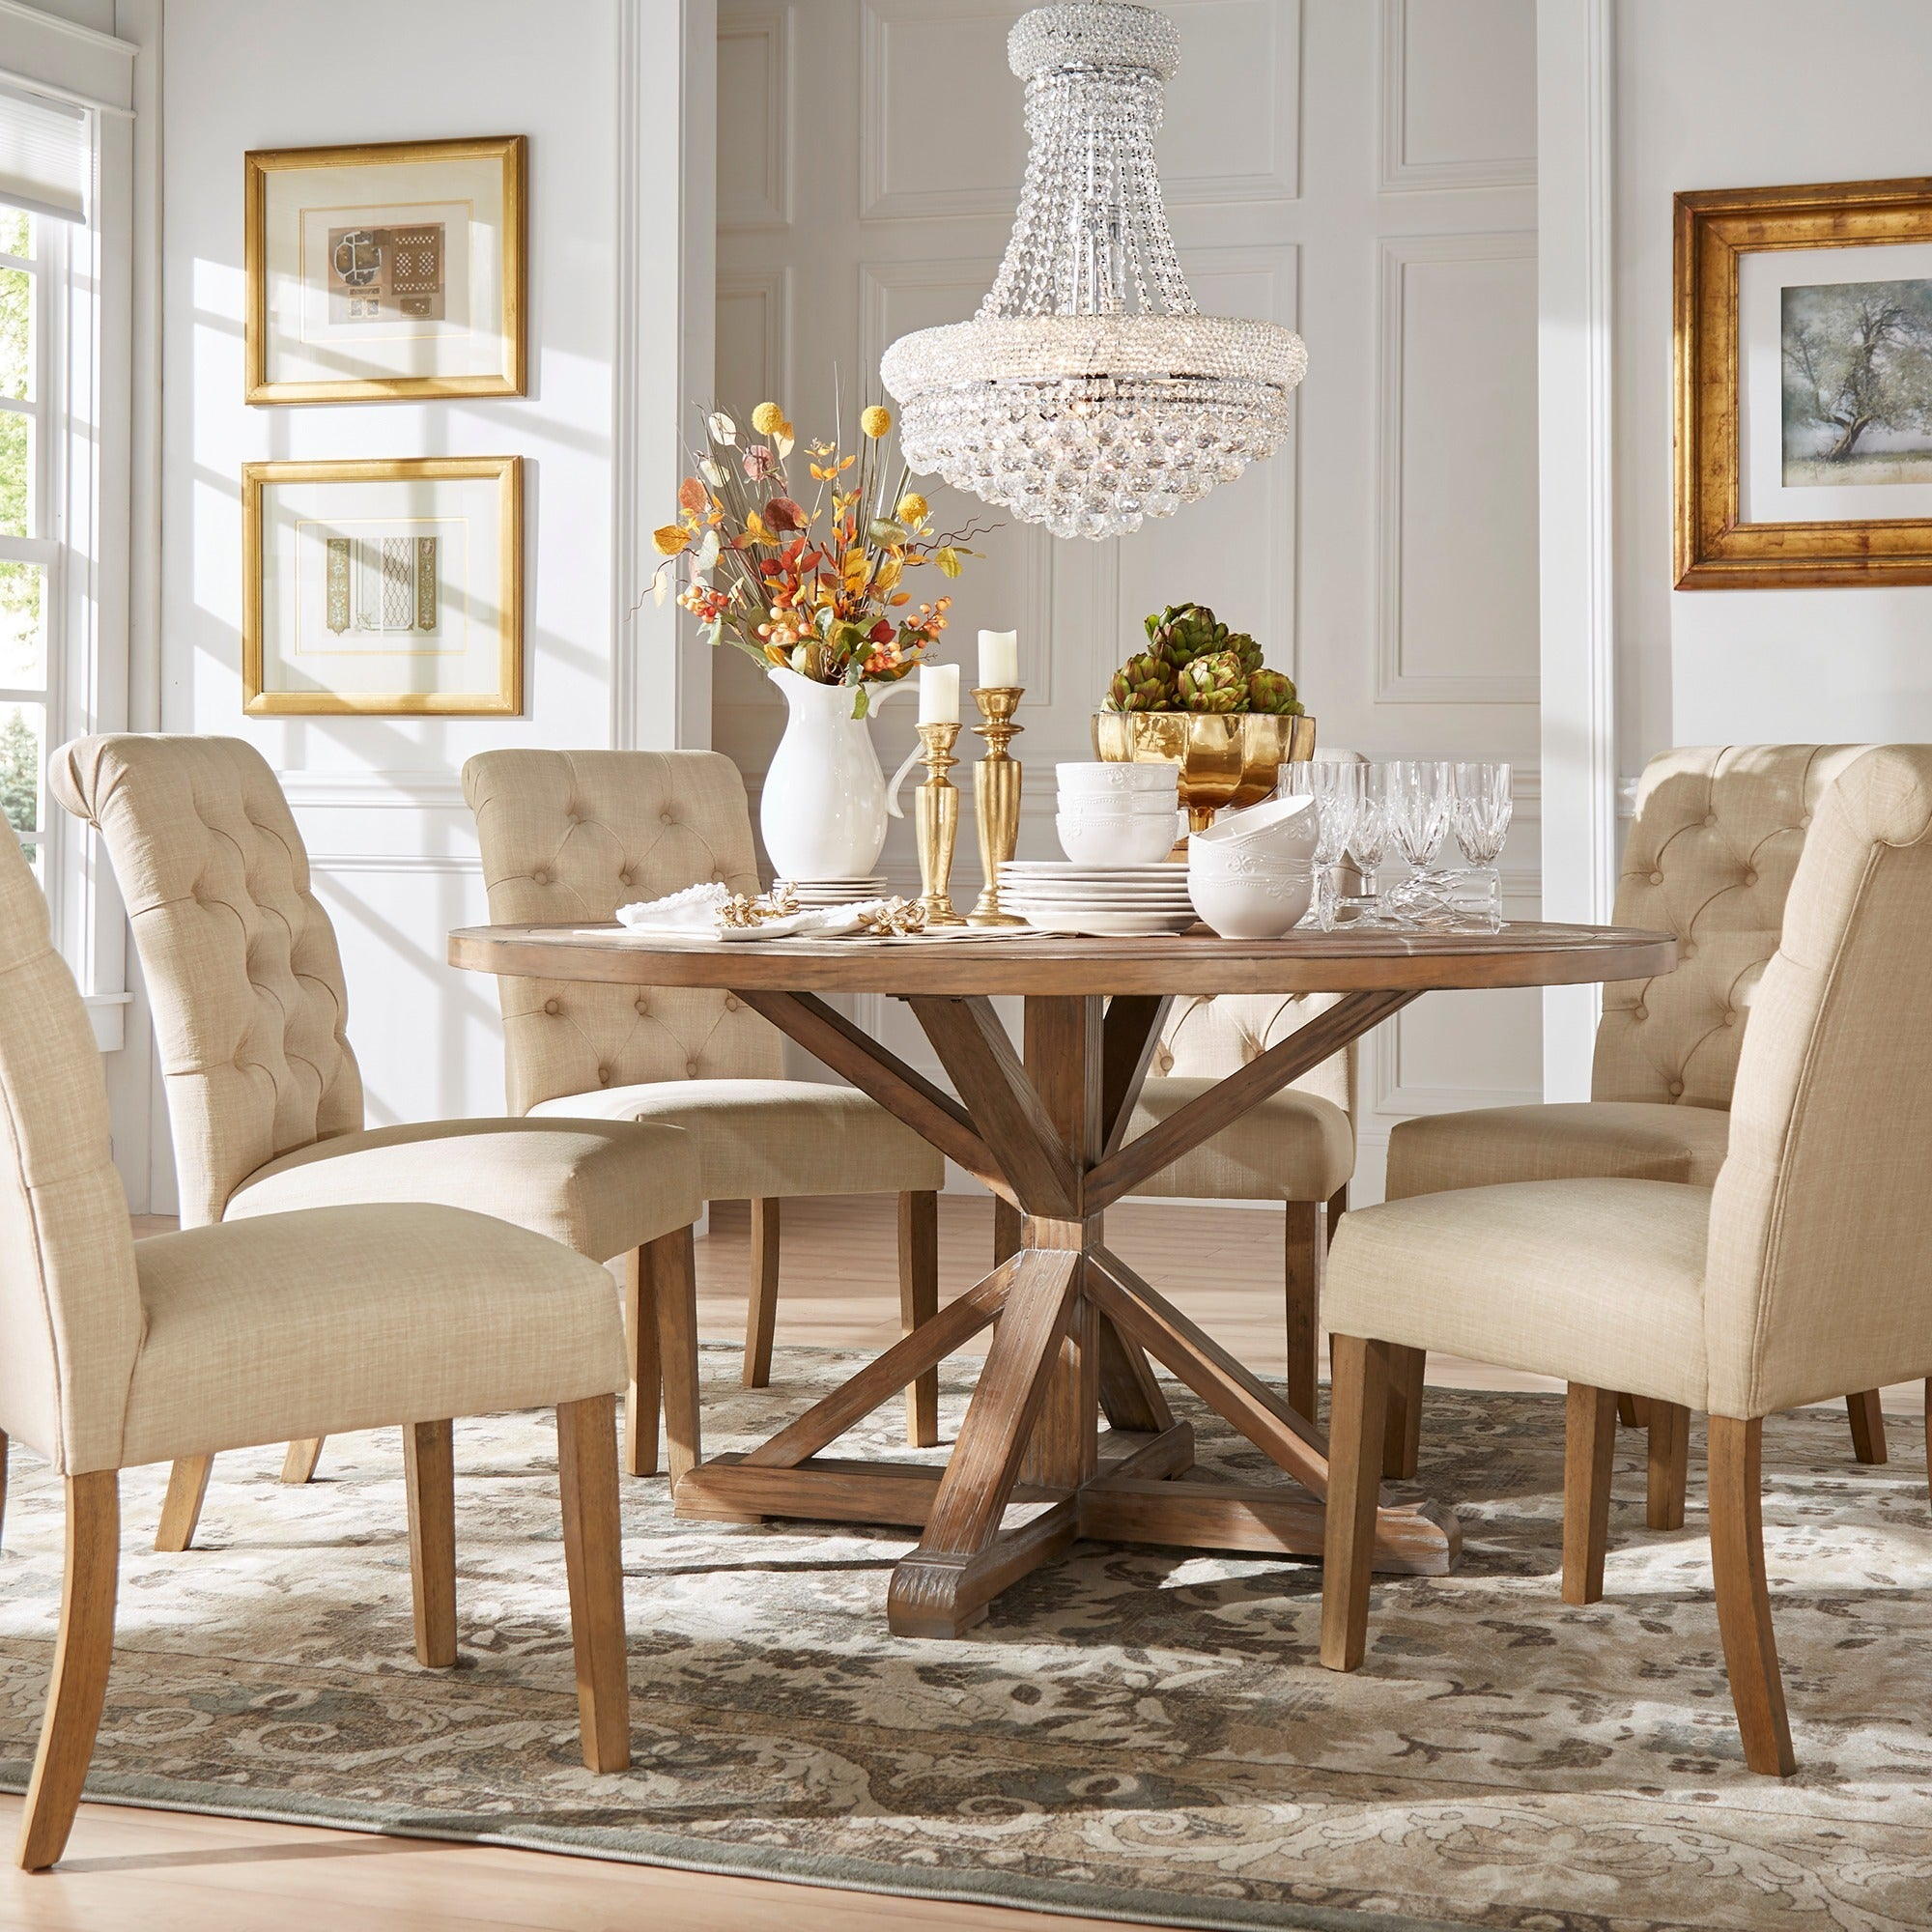 Benchwright Rustic X Base Round Pine Wood Rolled Back 7 Piece Dining Set By